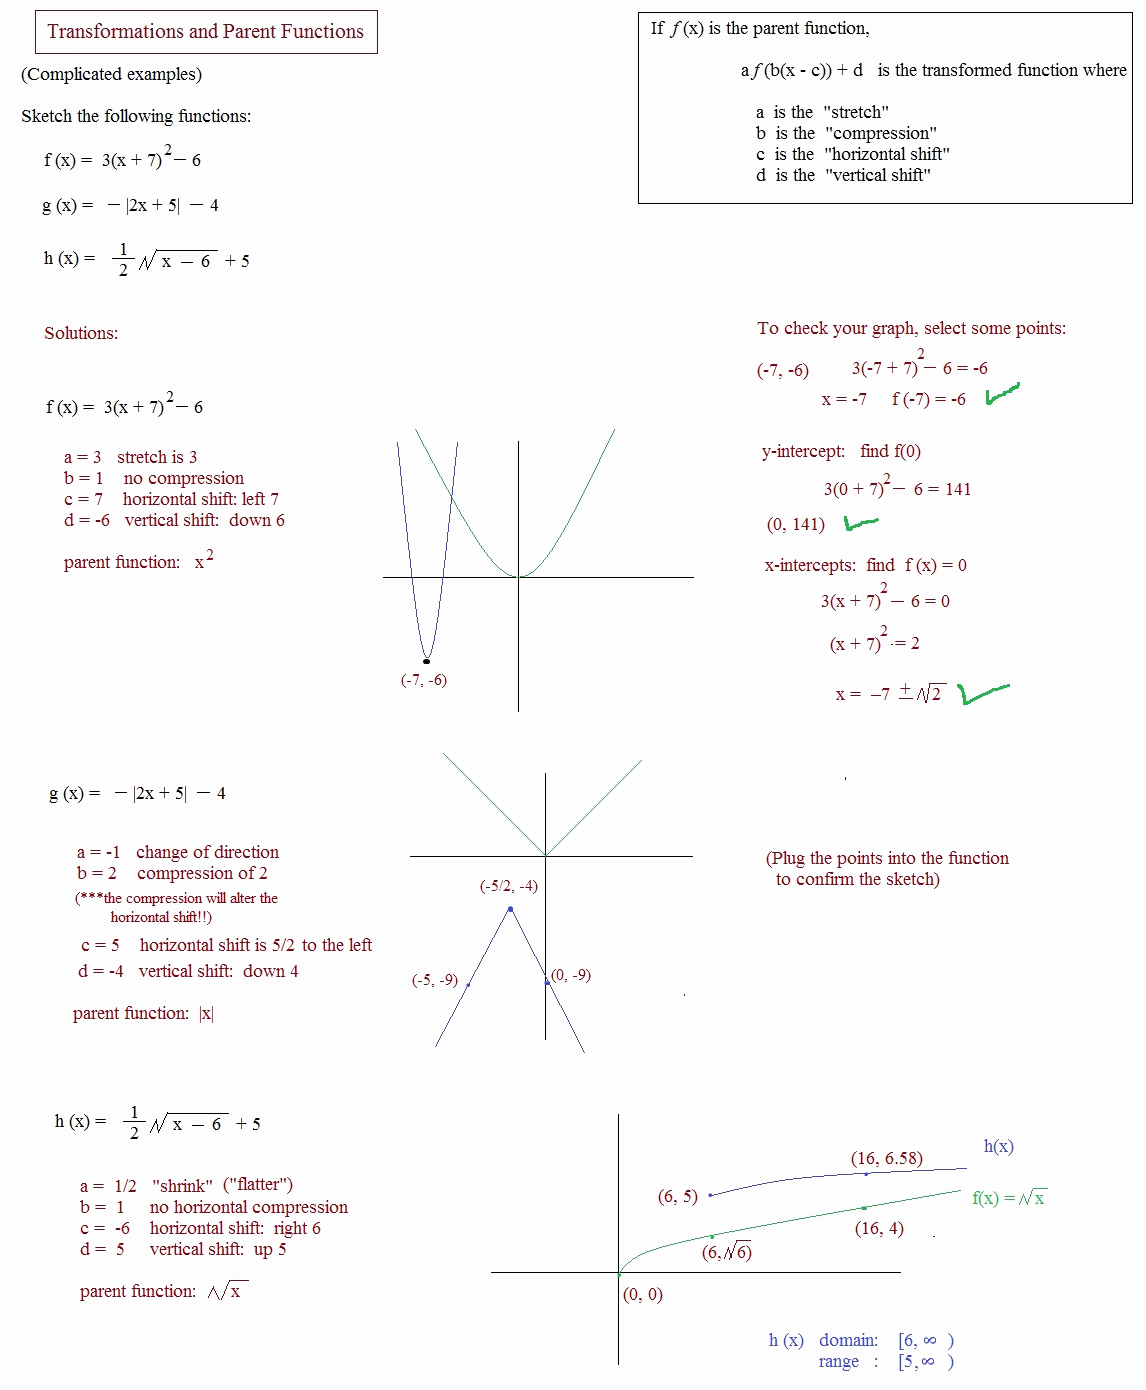 Transformations Of Functions Worksheet Answers Unique Math Plane Graphing I Transformations & Parent Functions